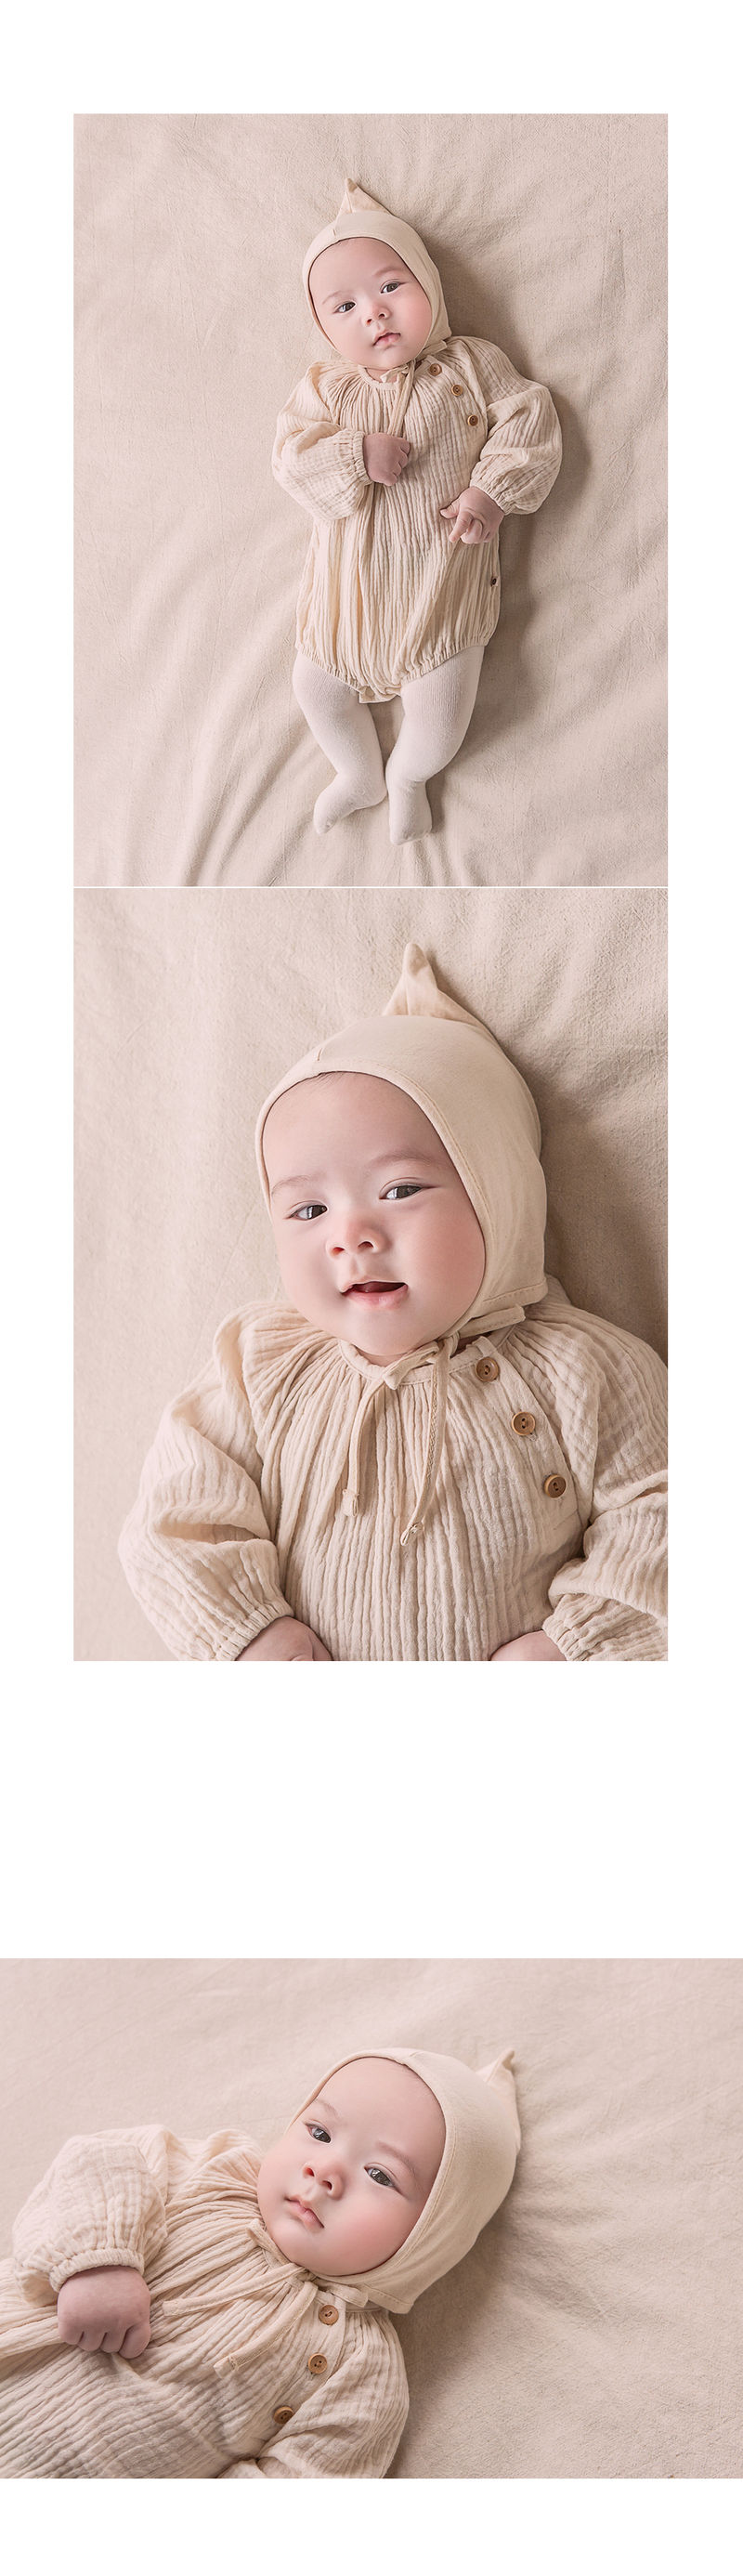 HAPPY PRINCE - Korean Children Fashion - #Kfashion4kids - Momo Organic Fairy Pilot - 4